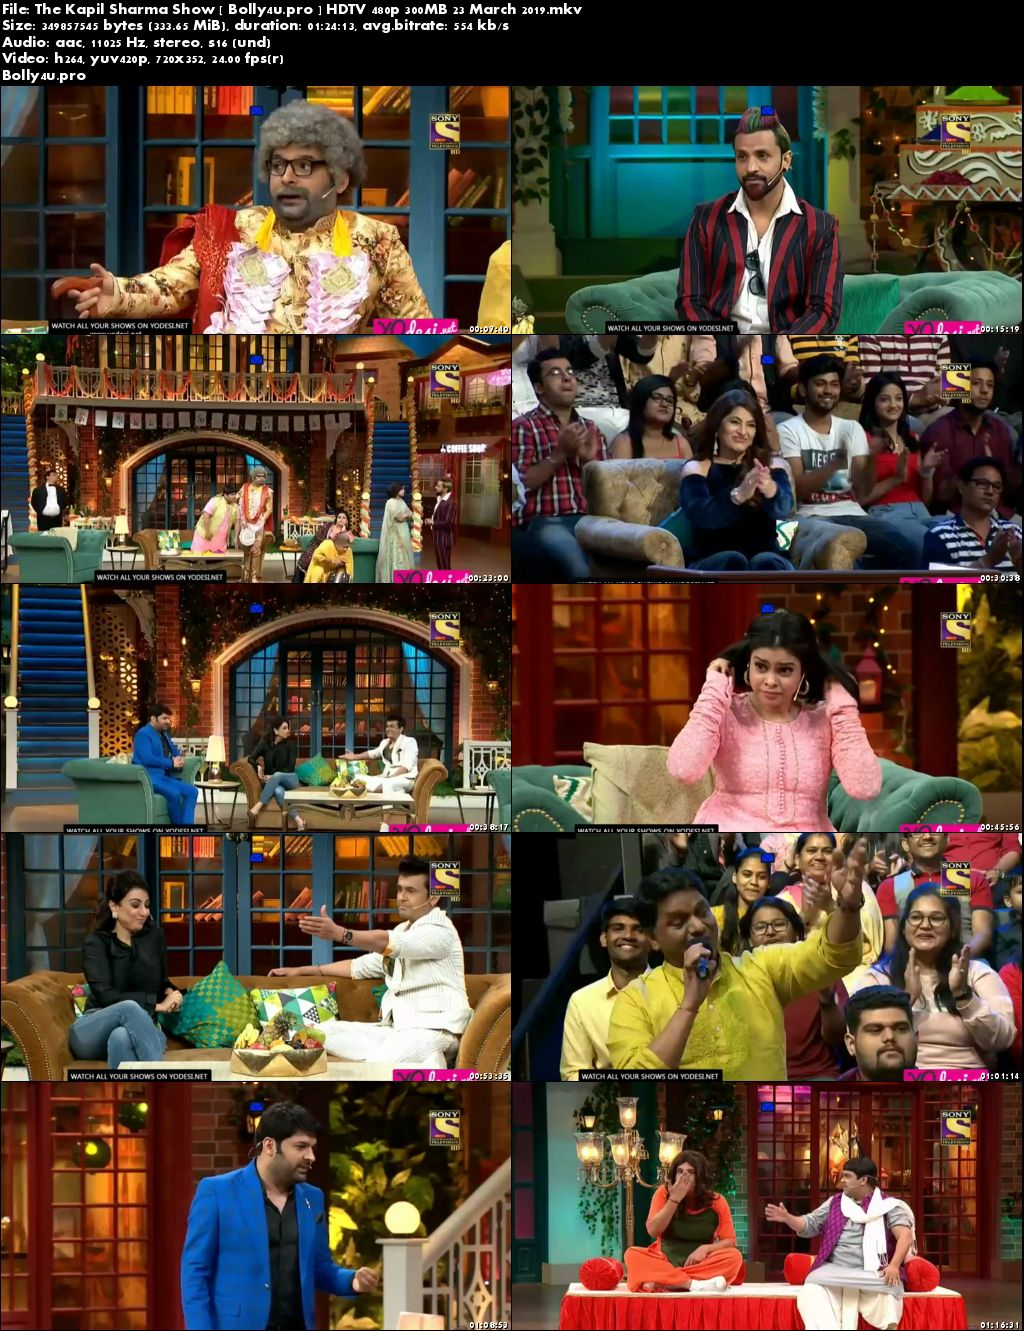 The Kapil Sharma Show HDTV 480p 300MB 23 March 2019 Download